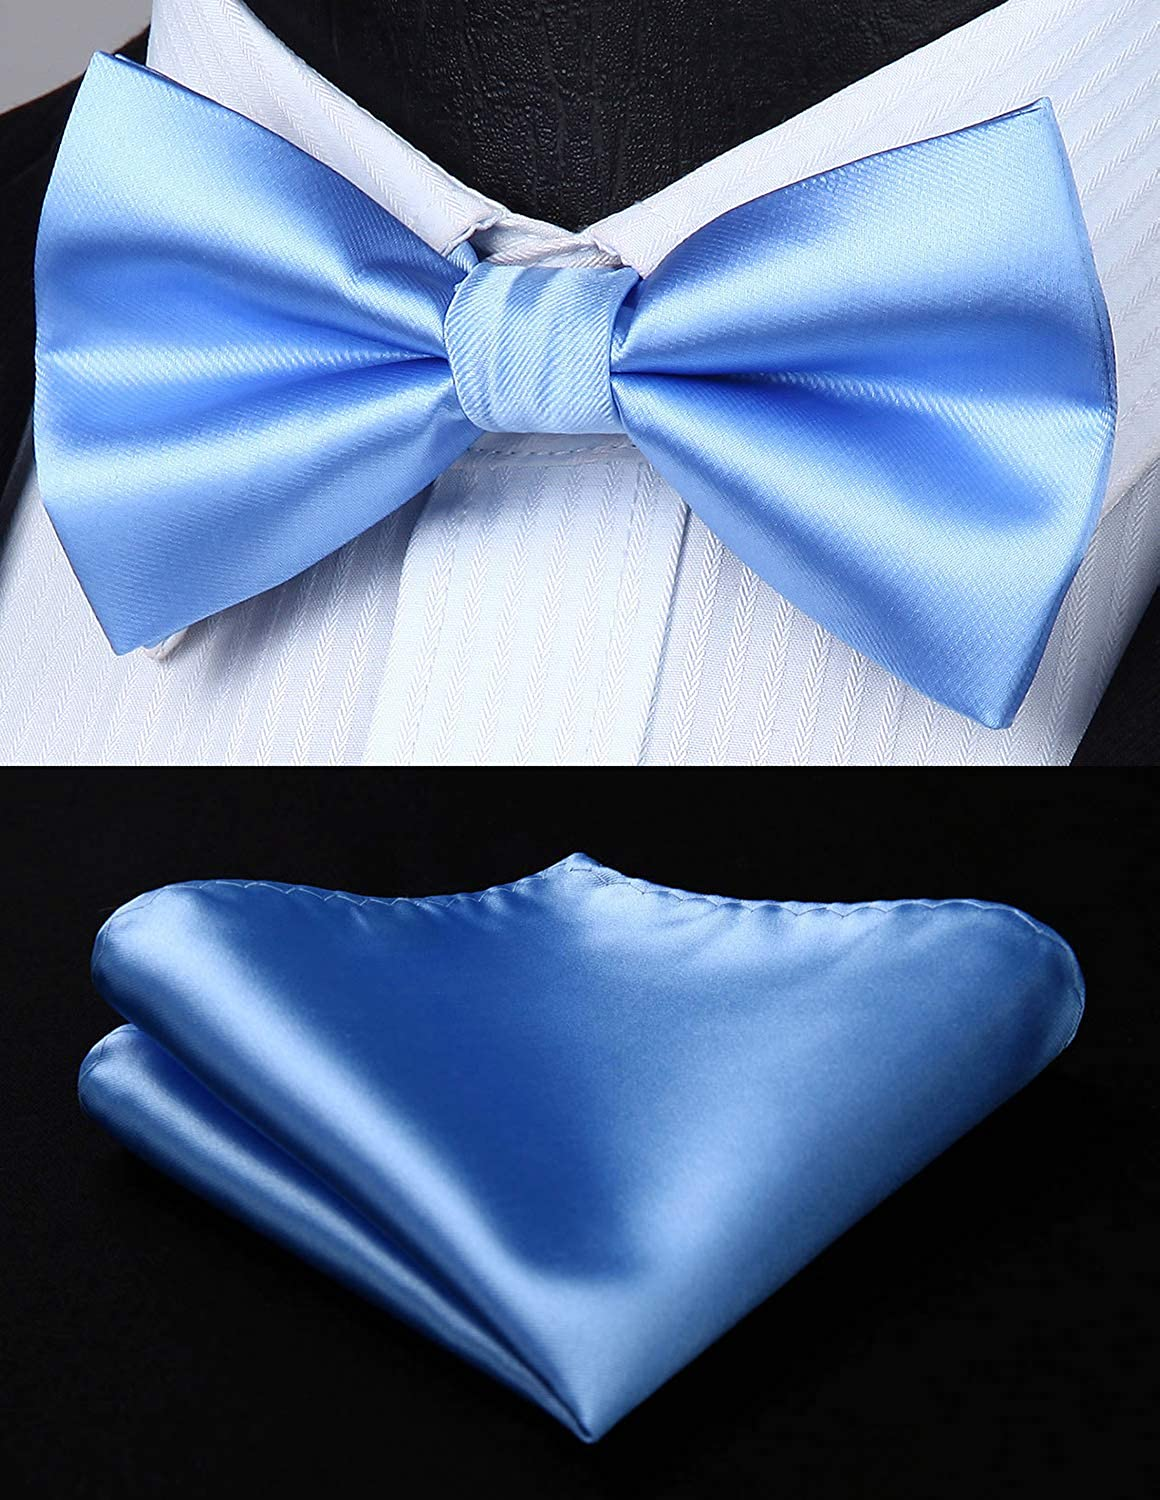 HISDERN Solid White 6 Clips Suspenders and Bow Tie Set Y Shape Adjustable Braces